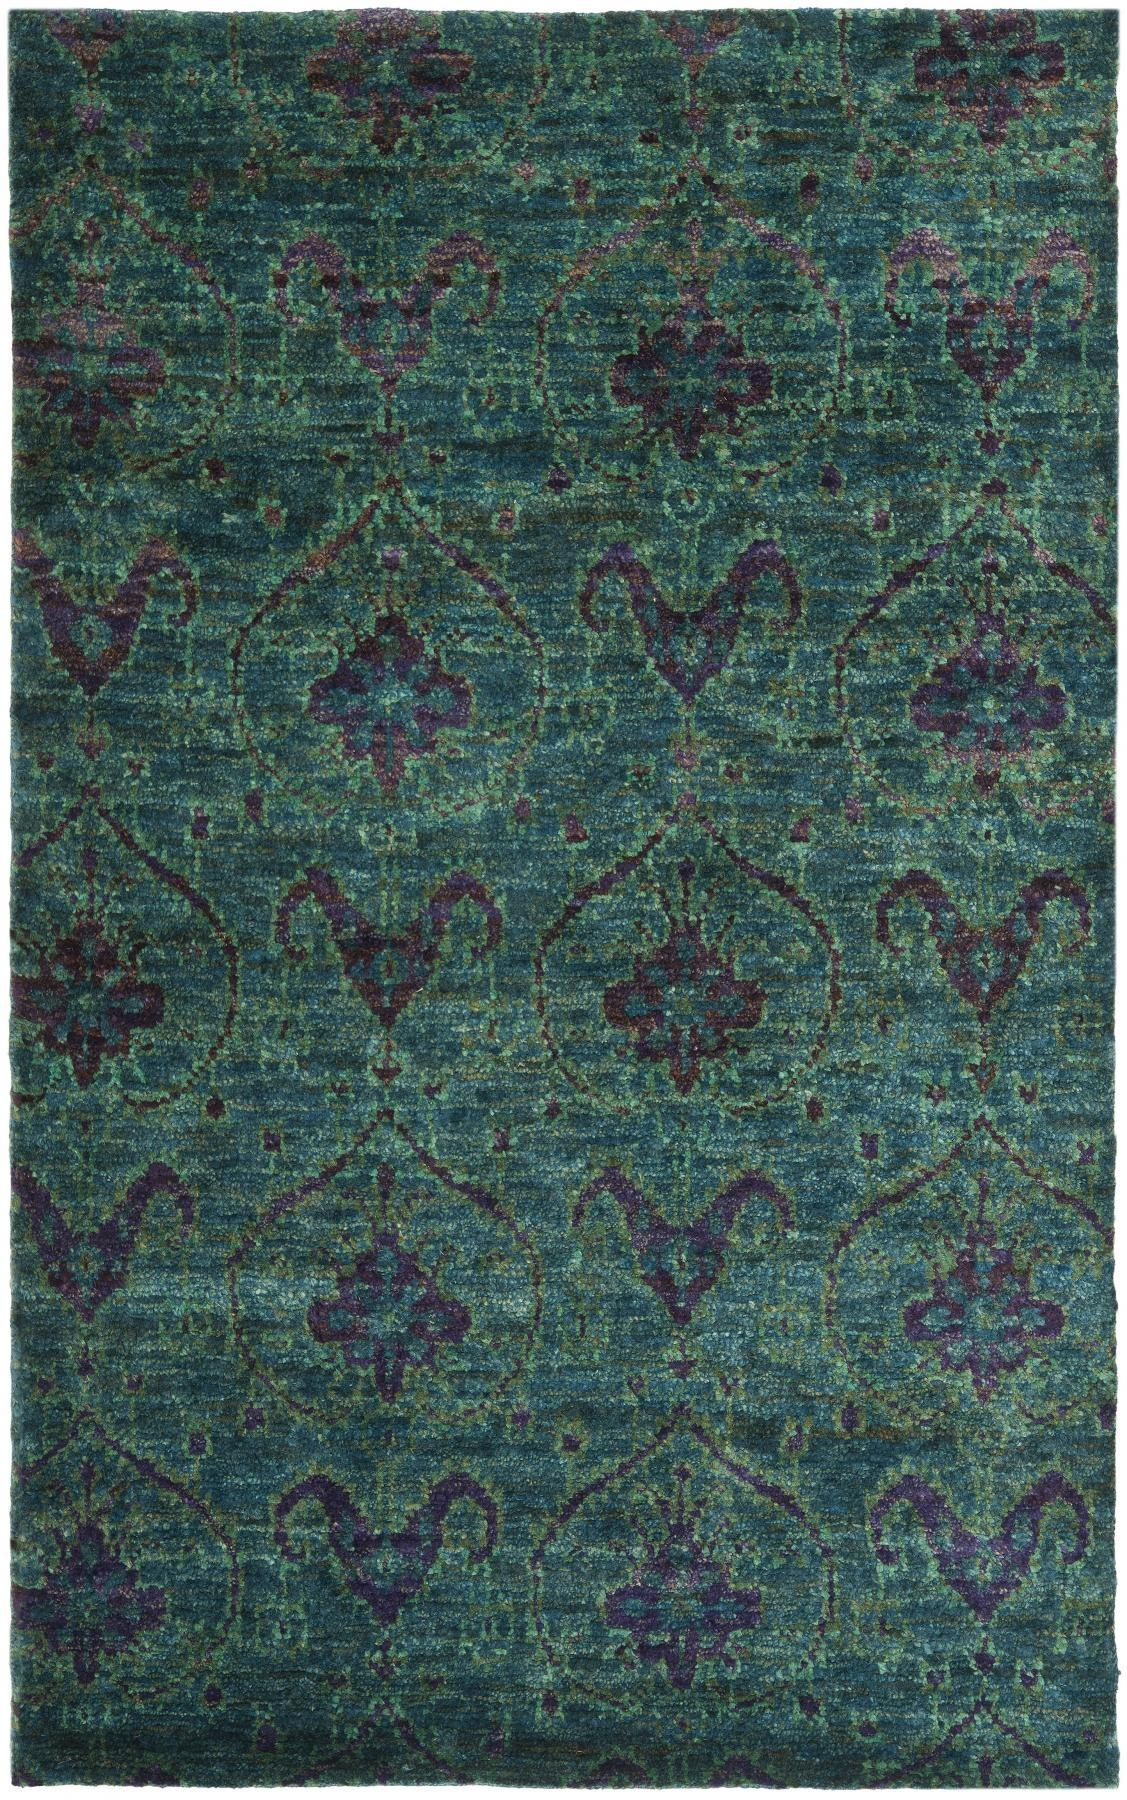 Soft Natural Fiber Rugs Bohemian Collection Safavieh Inside Bohemian Rugs (Image 13 of 15)